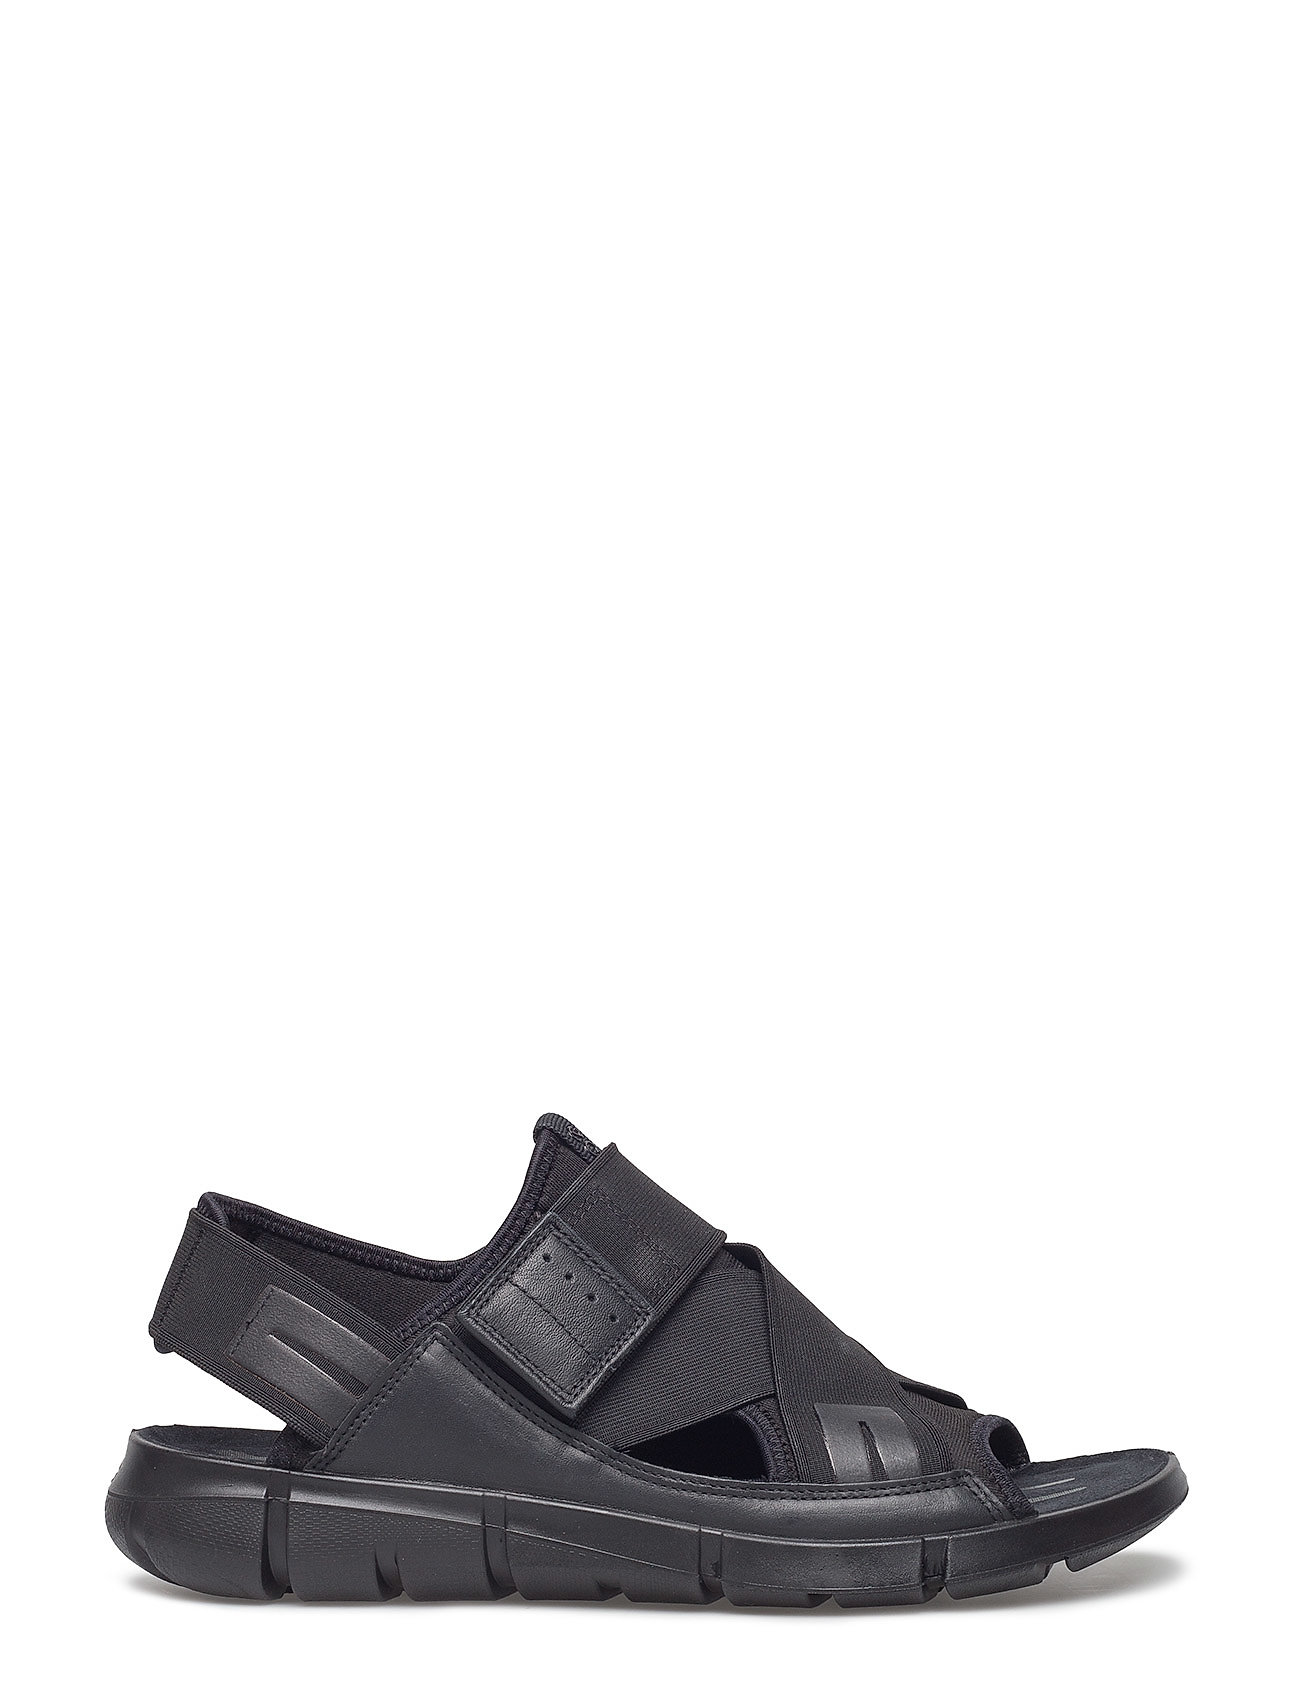 Intrinsic Sandal Men'S Sandaler Sort ECCO